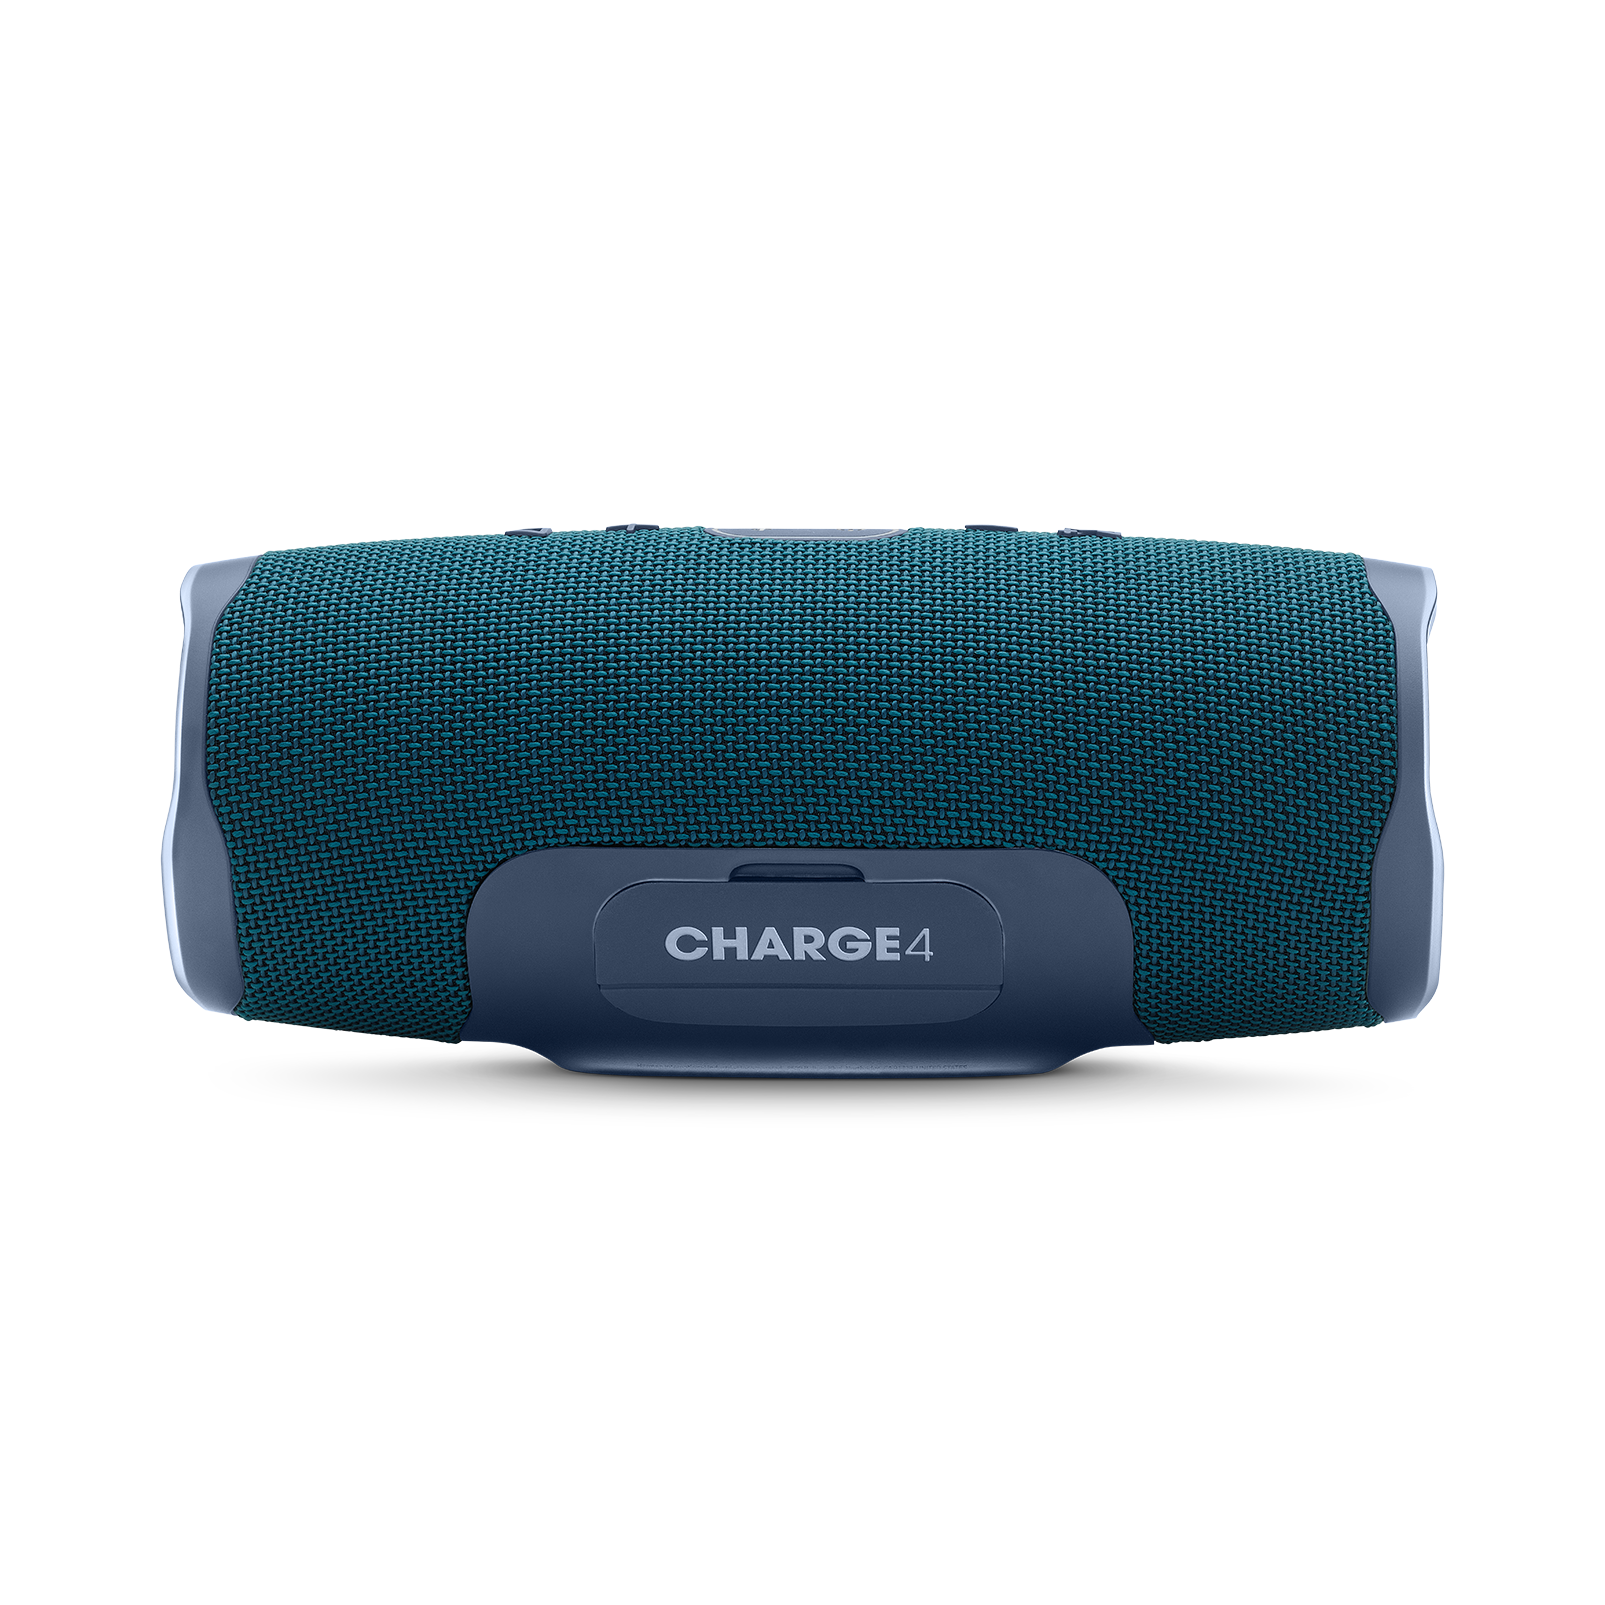 JBL Charge 4 - Blue - Portable Bluetooth speaker - Back